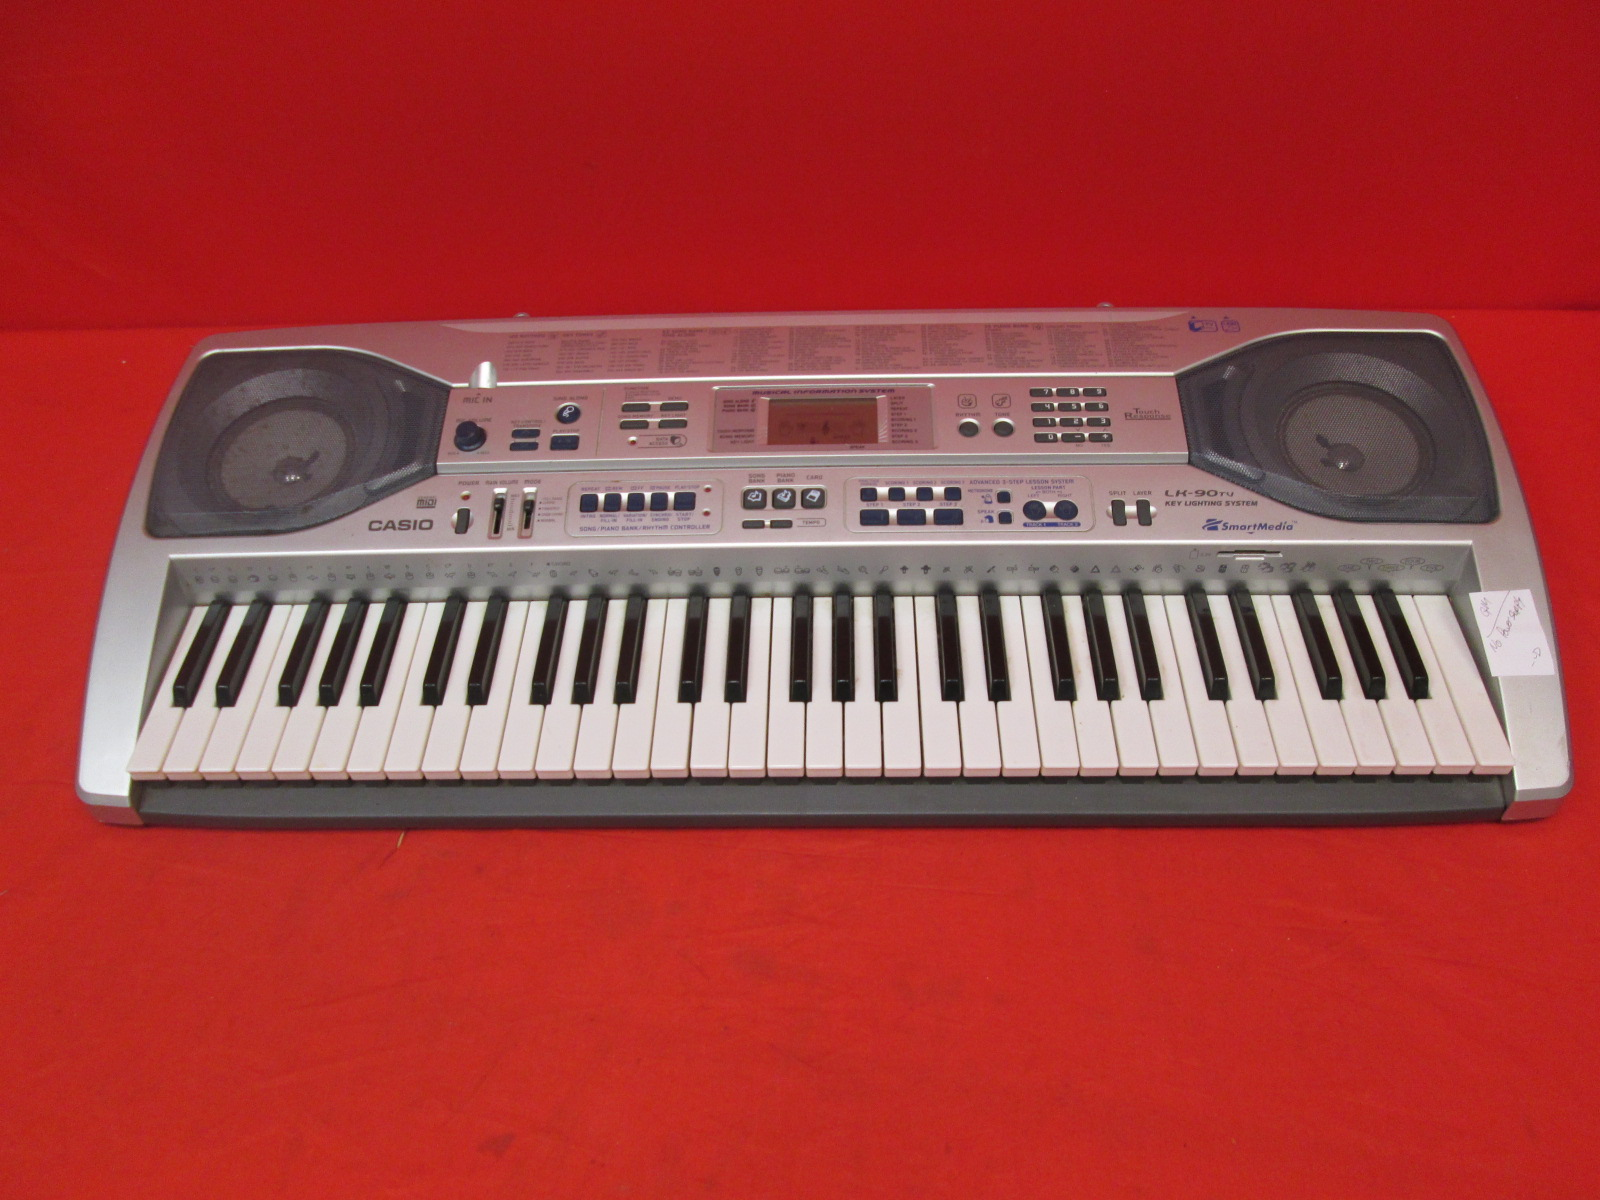 Casio LK-90TV 61 Key Lighted Keyboard Incomplete